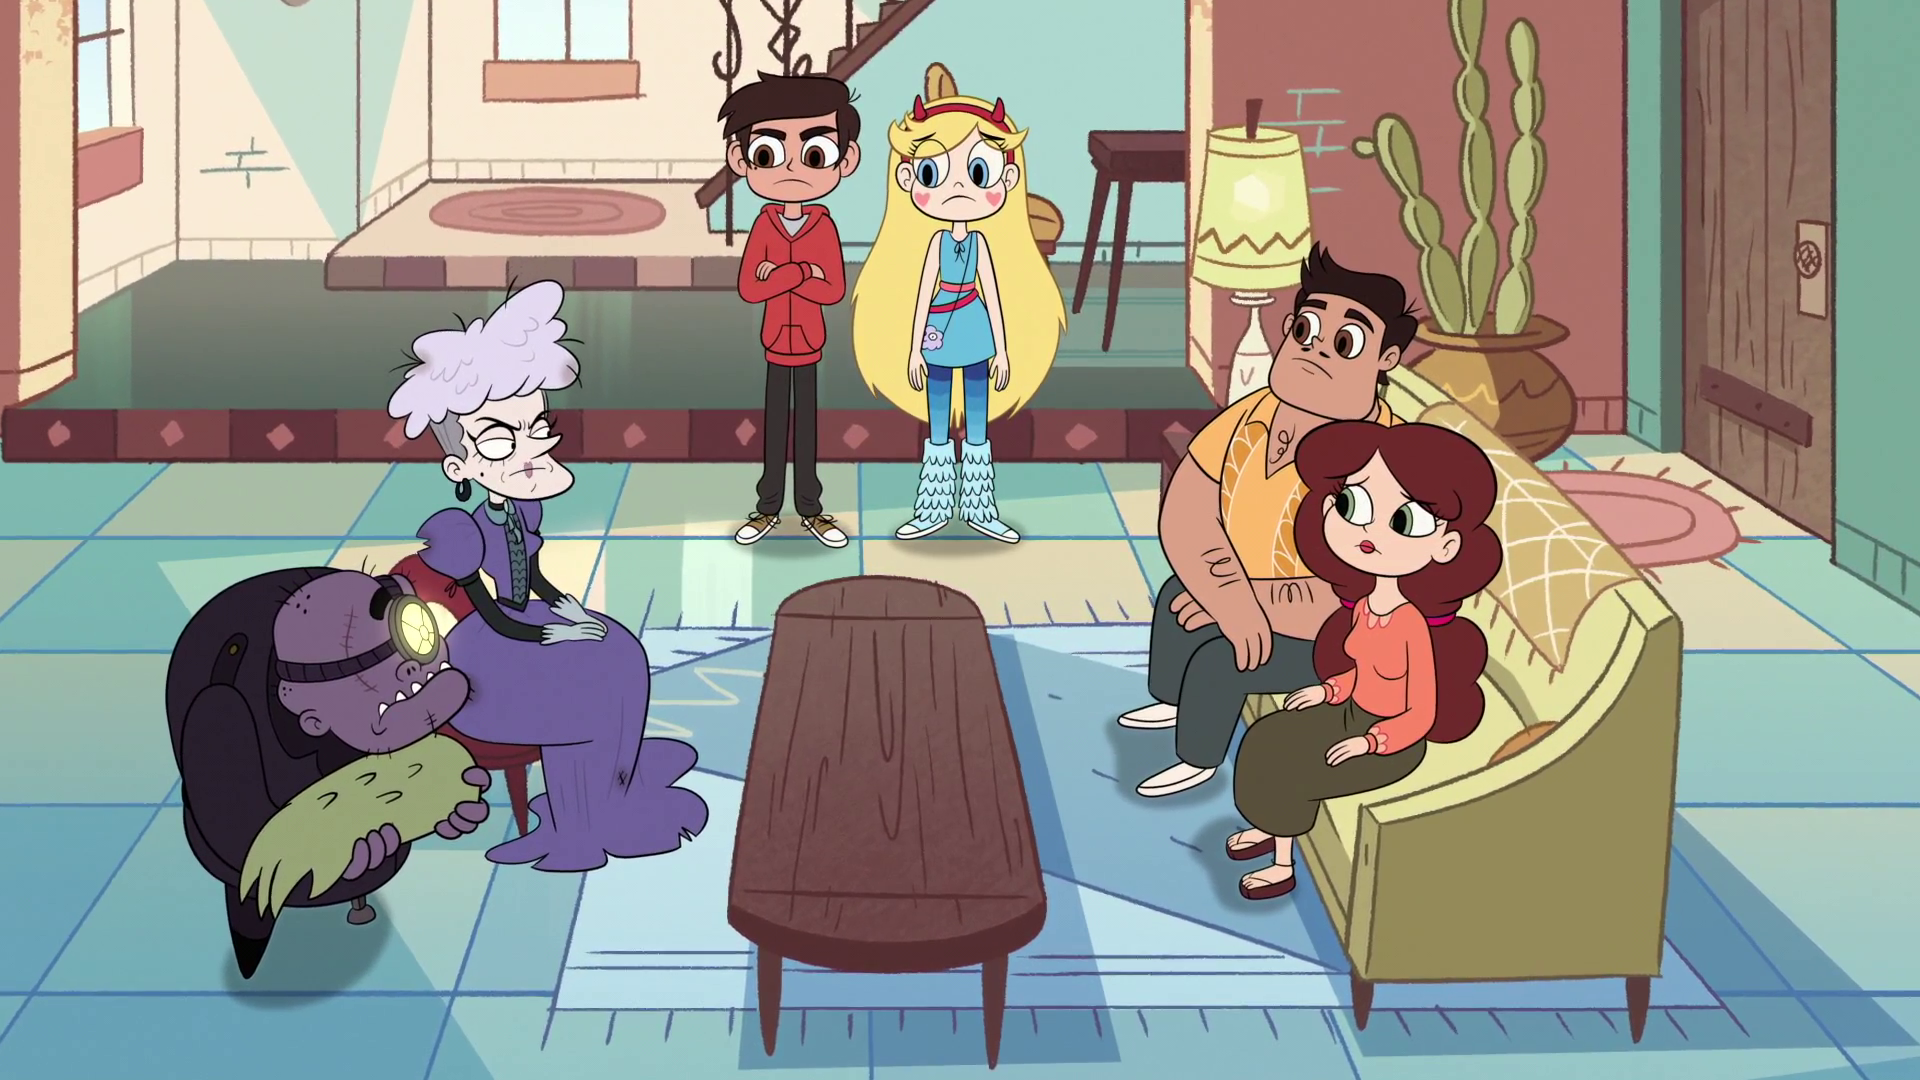 star vs the forces of evil lint catcher